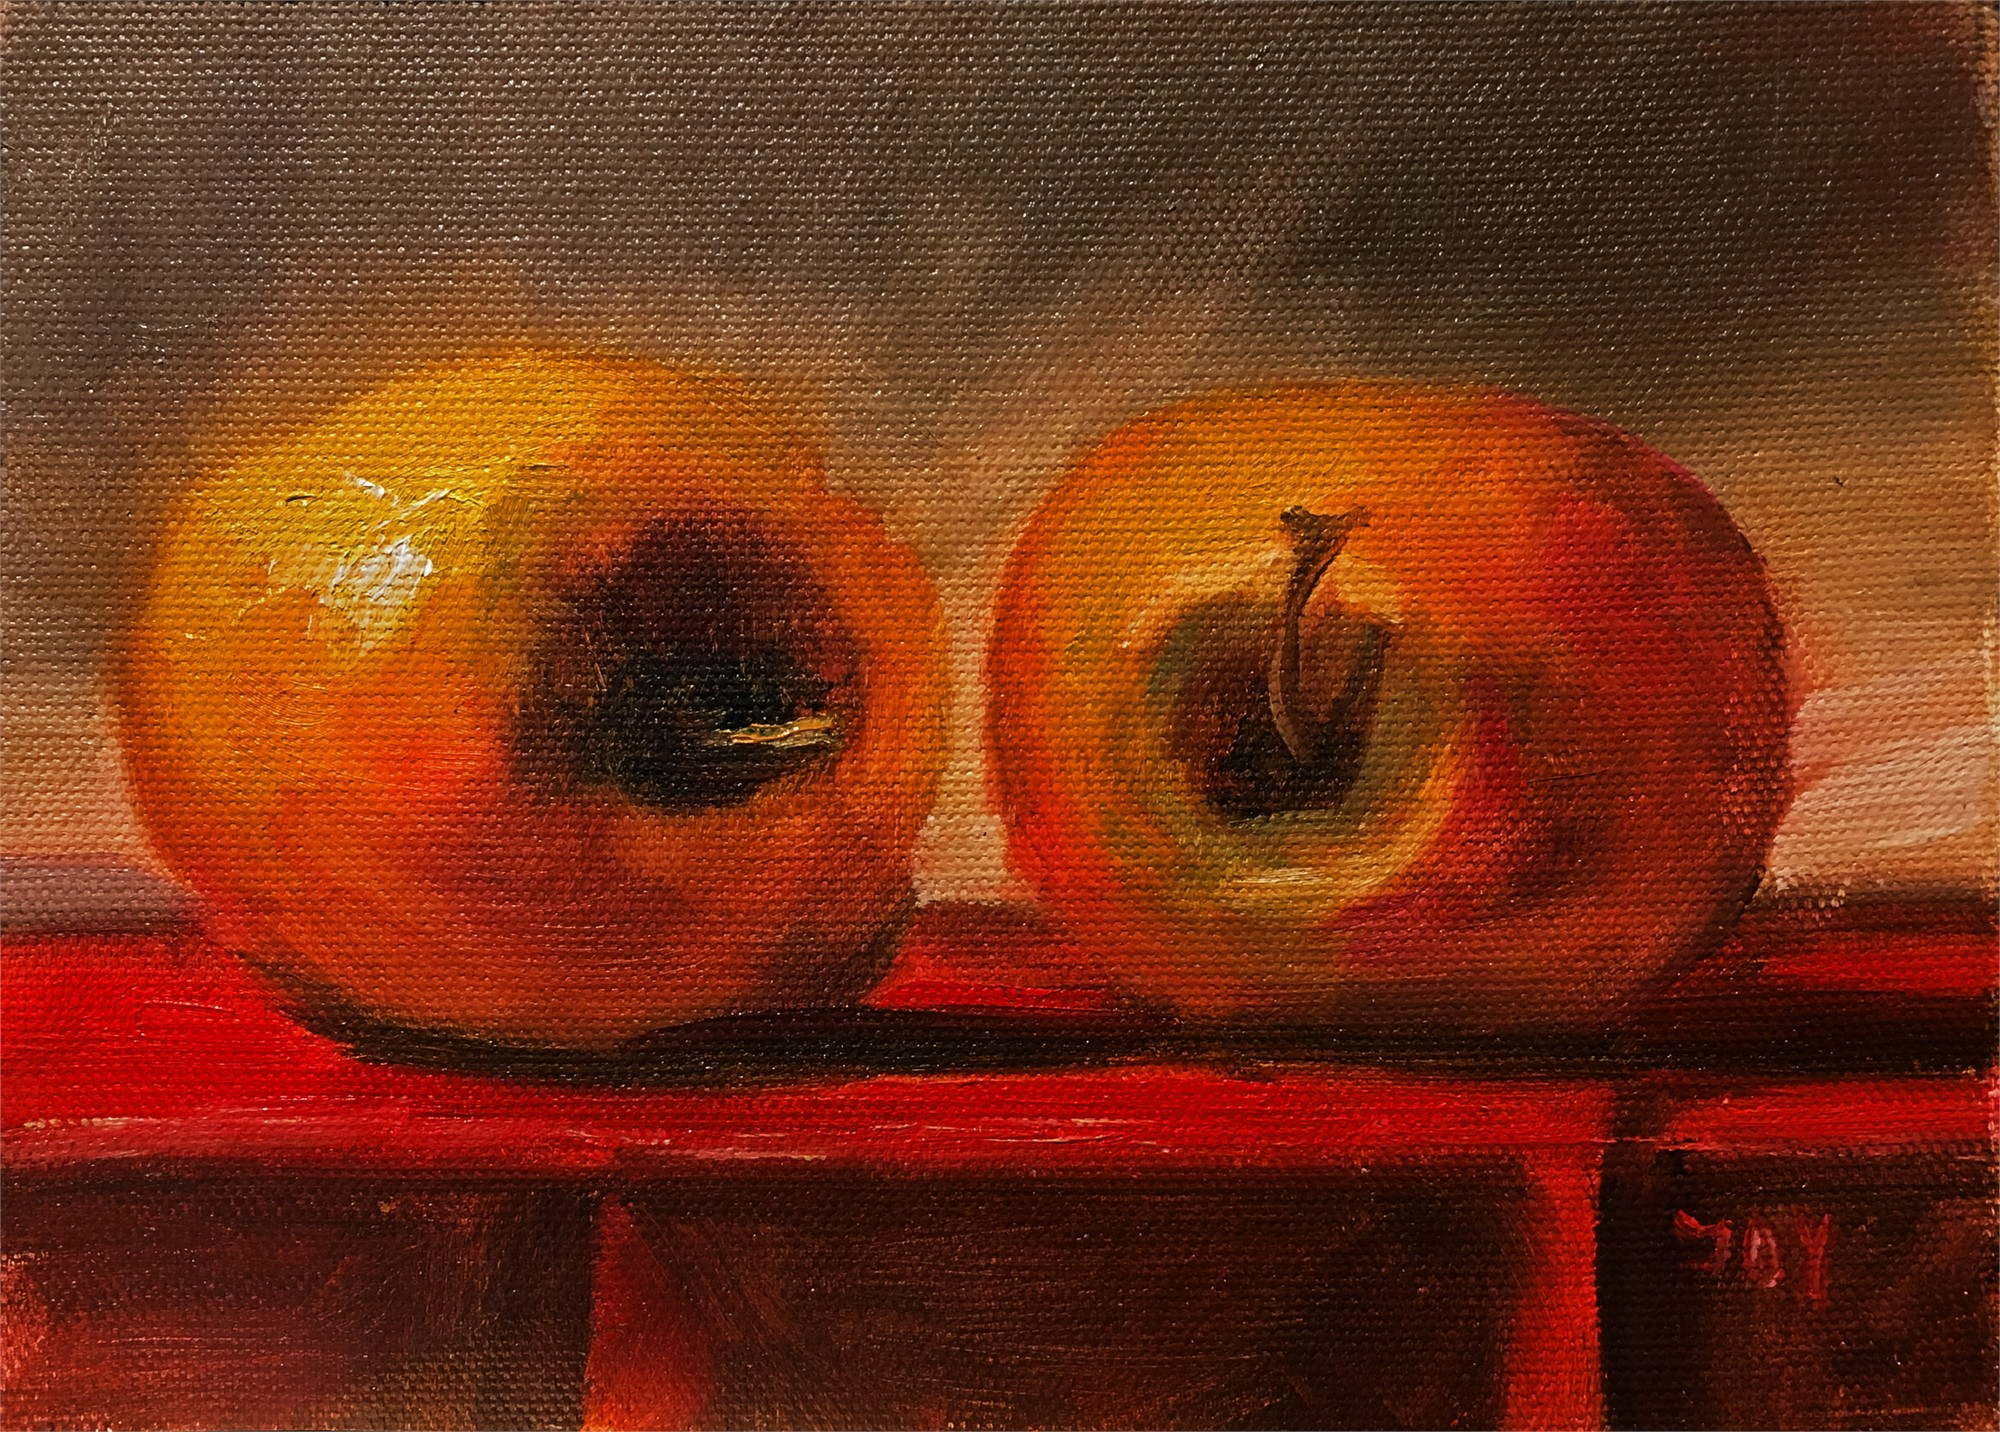 Apples by JOY